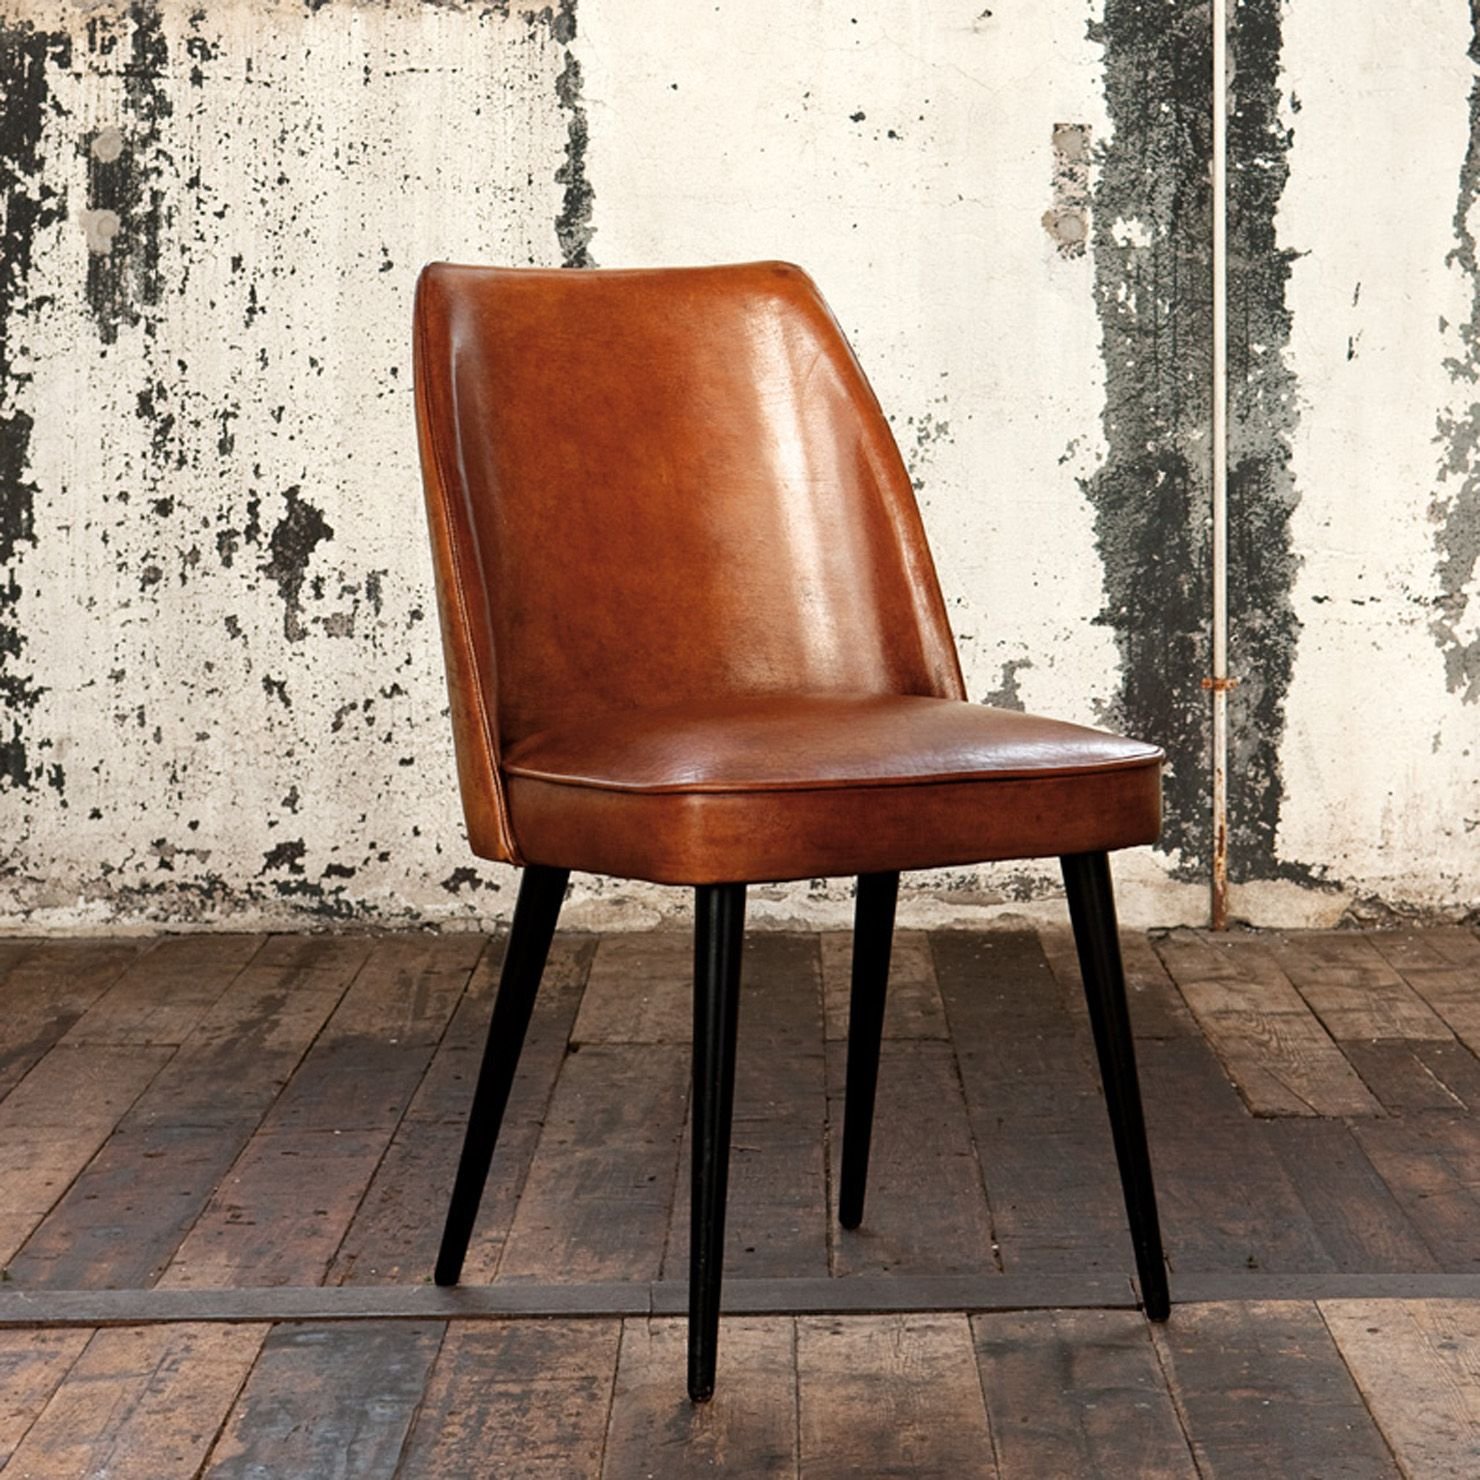 Oliver B Garbo Chair Achica Leather Dining Chairs Vintage Leather Chairs Dining Chairs